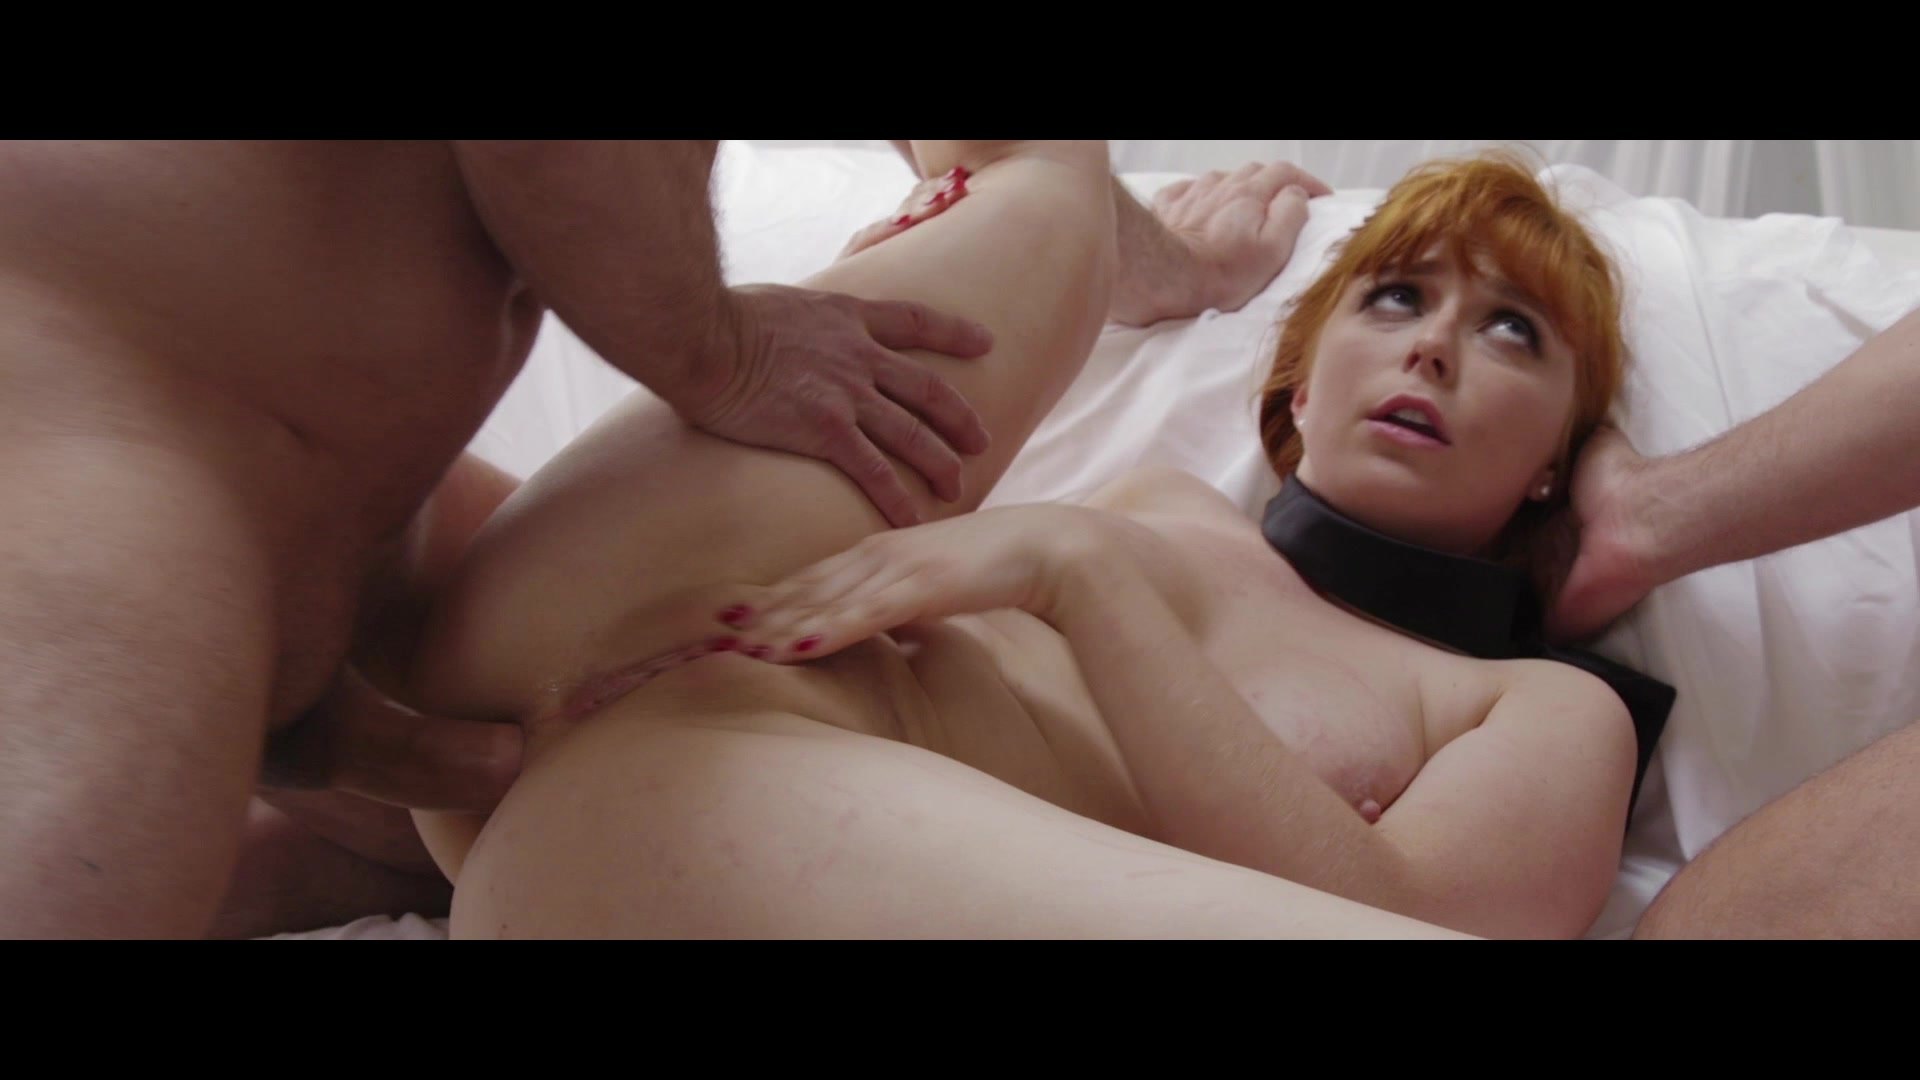 Scene with John Strong, Mick Blue and Penny Pax - image 16 out of 20